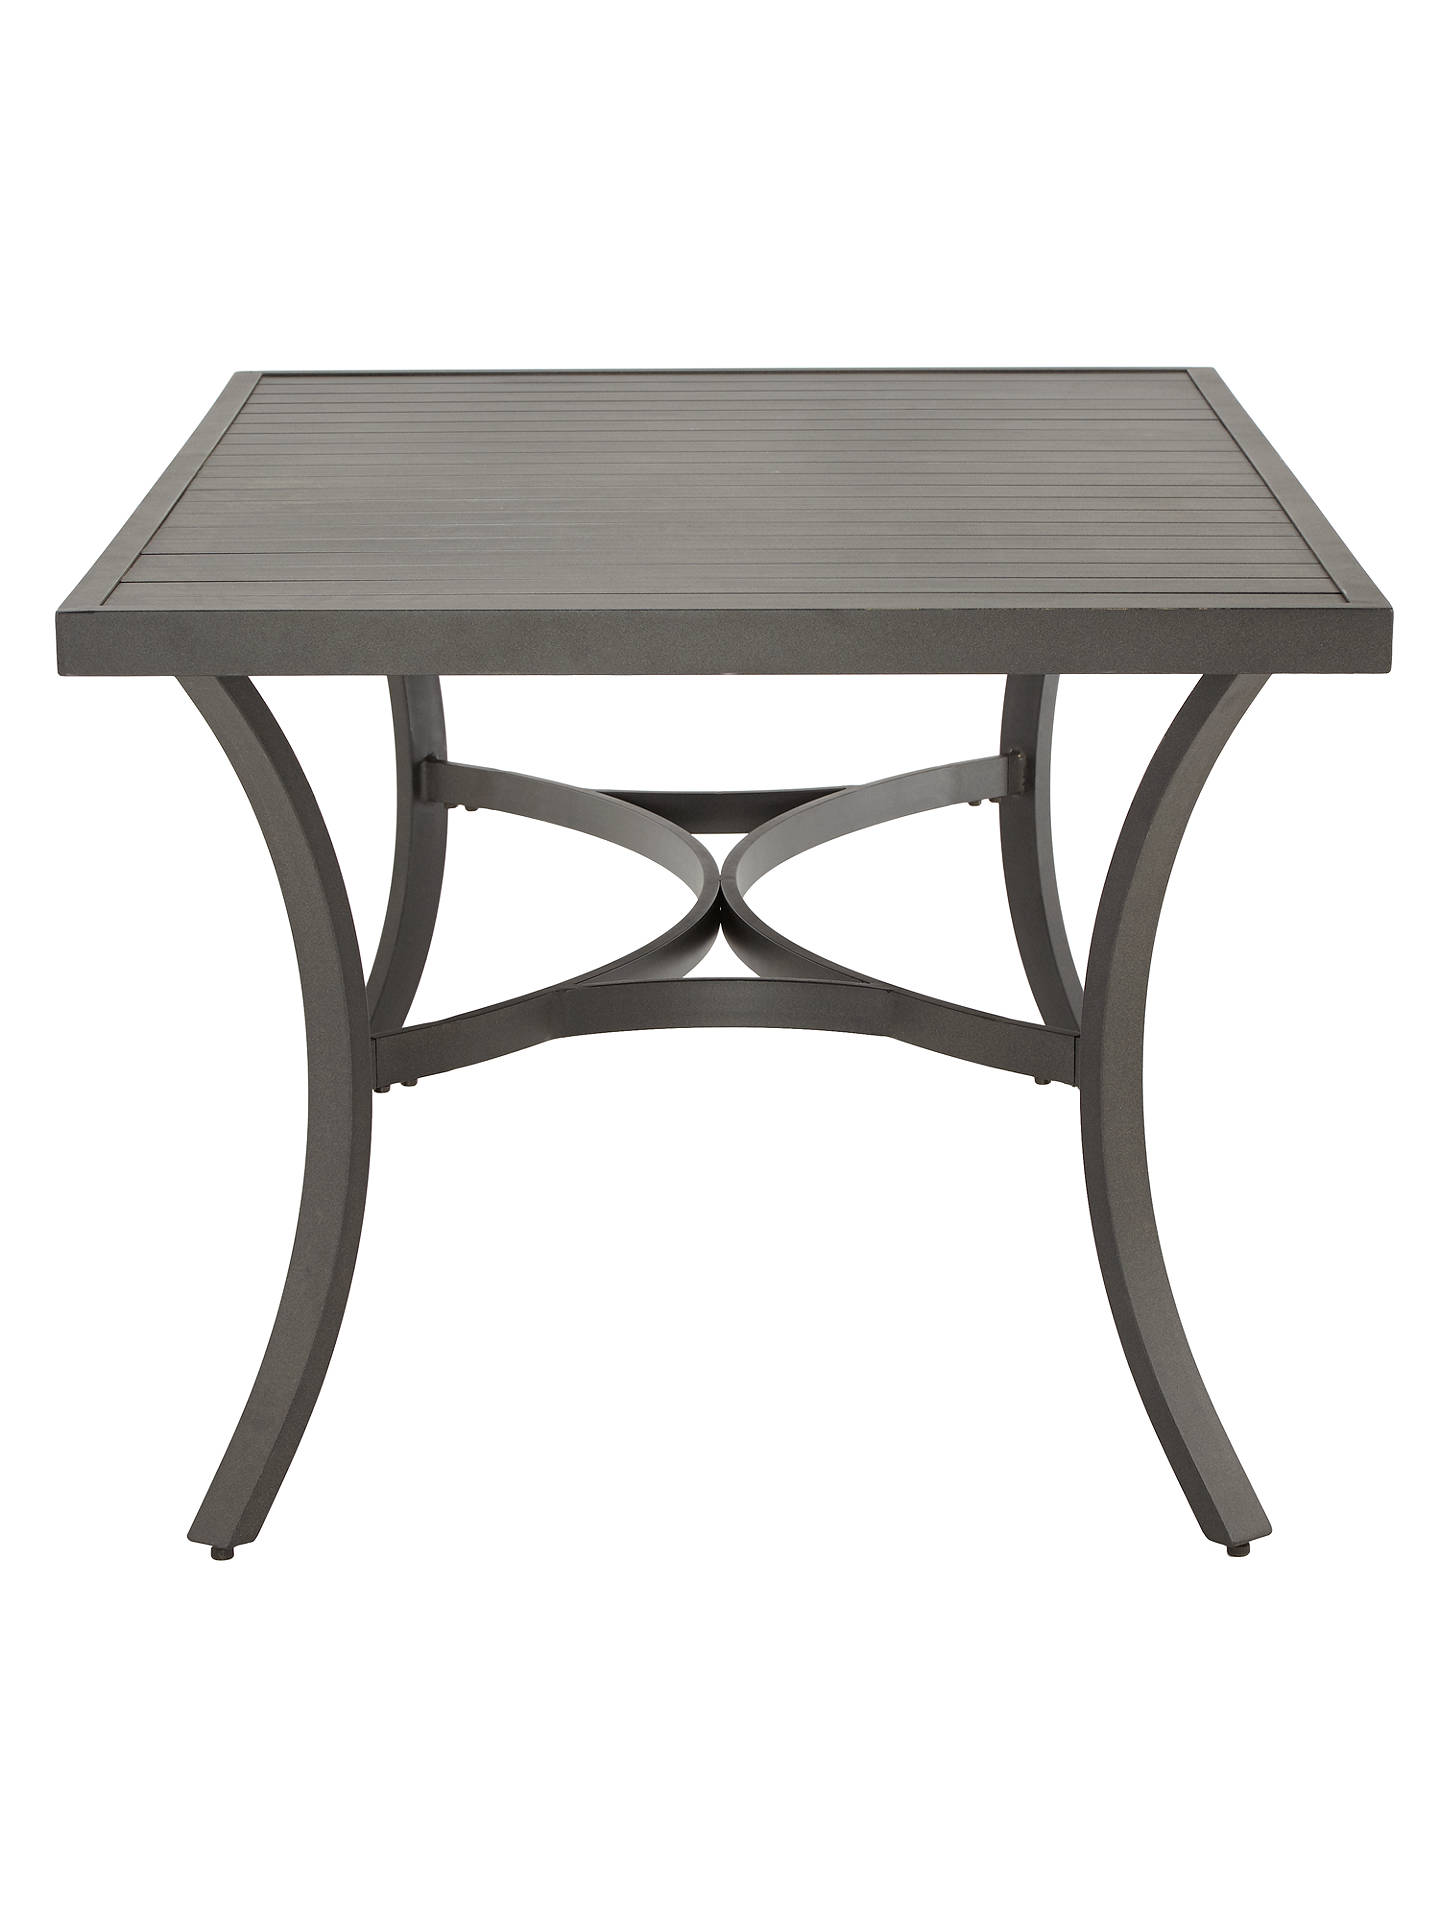 Buy John Lewis & Partners Marlow Aluminium 6 Seater Garden Dining Table, Black/Grey Online at johnlewis.com